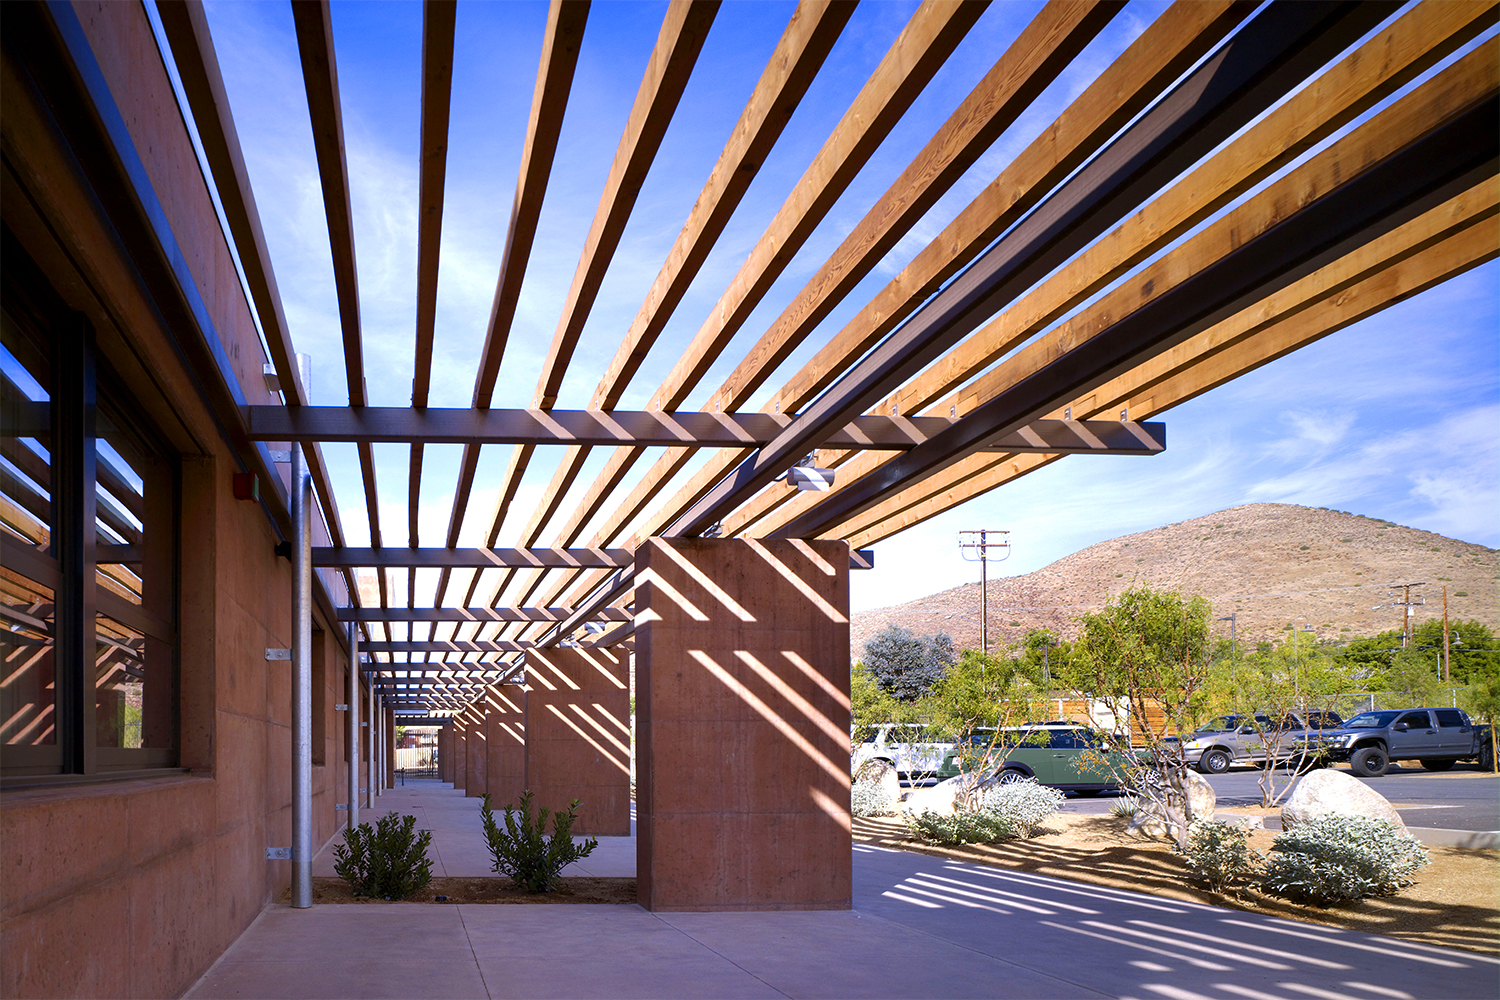 07_Projects_Mojave Desert Forest Service Ranger Station.jpg